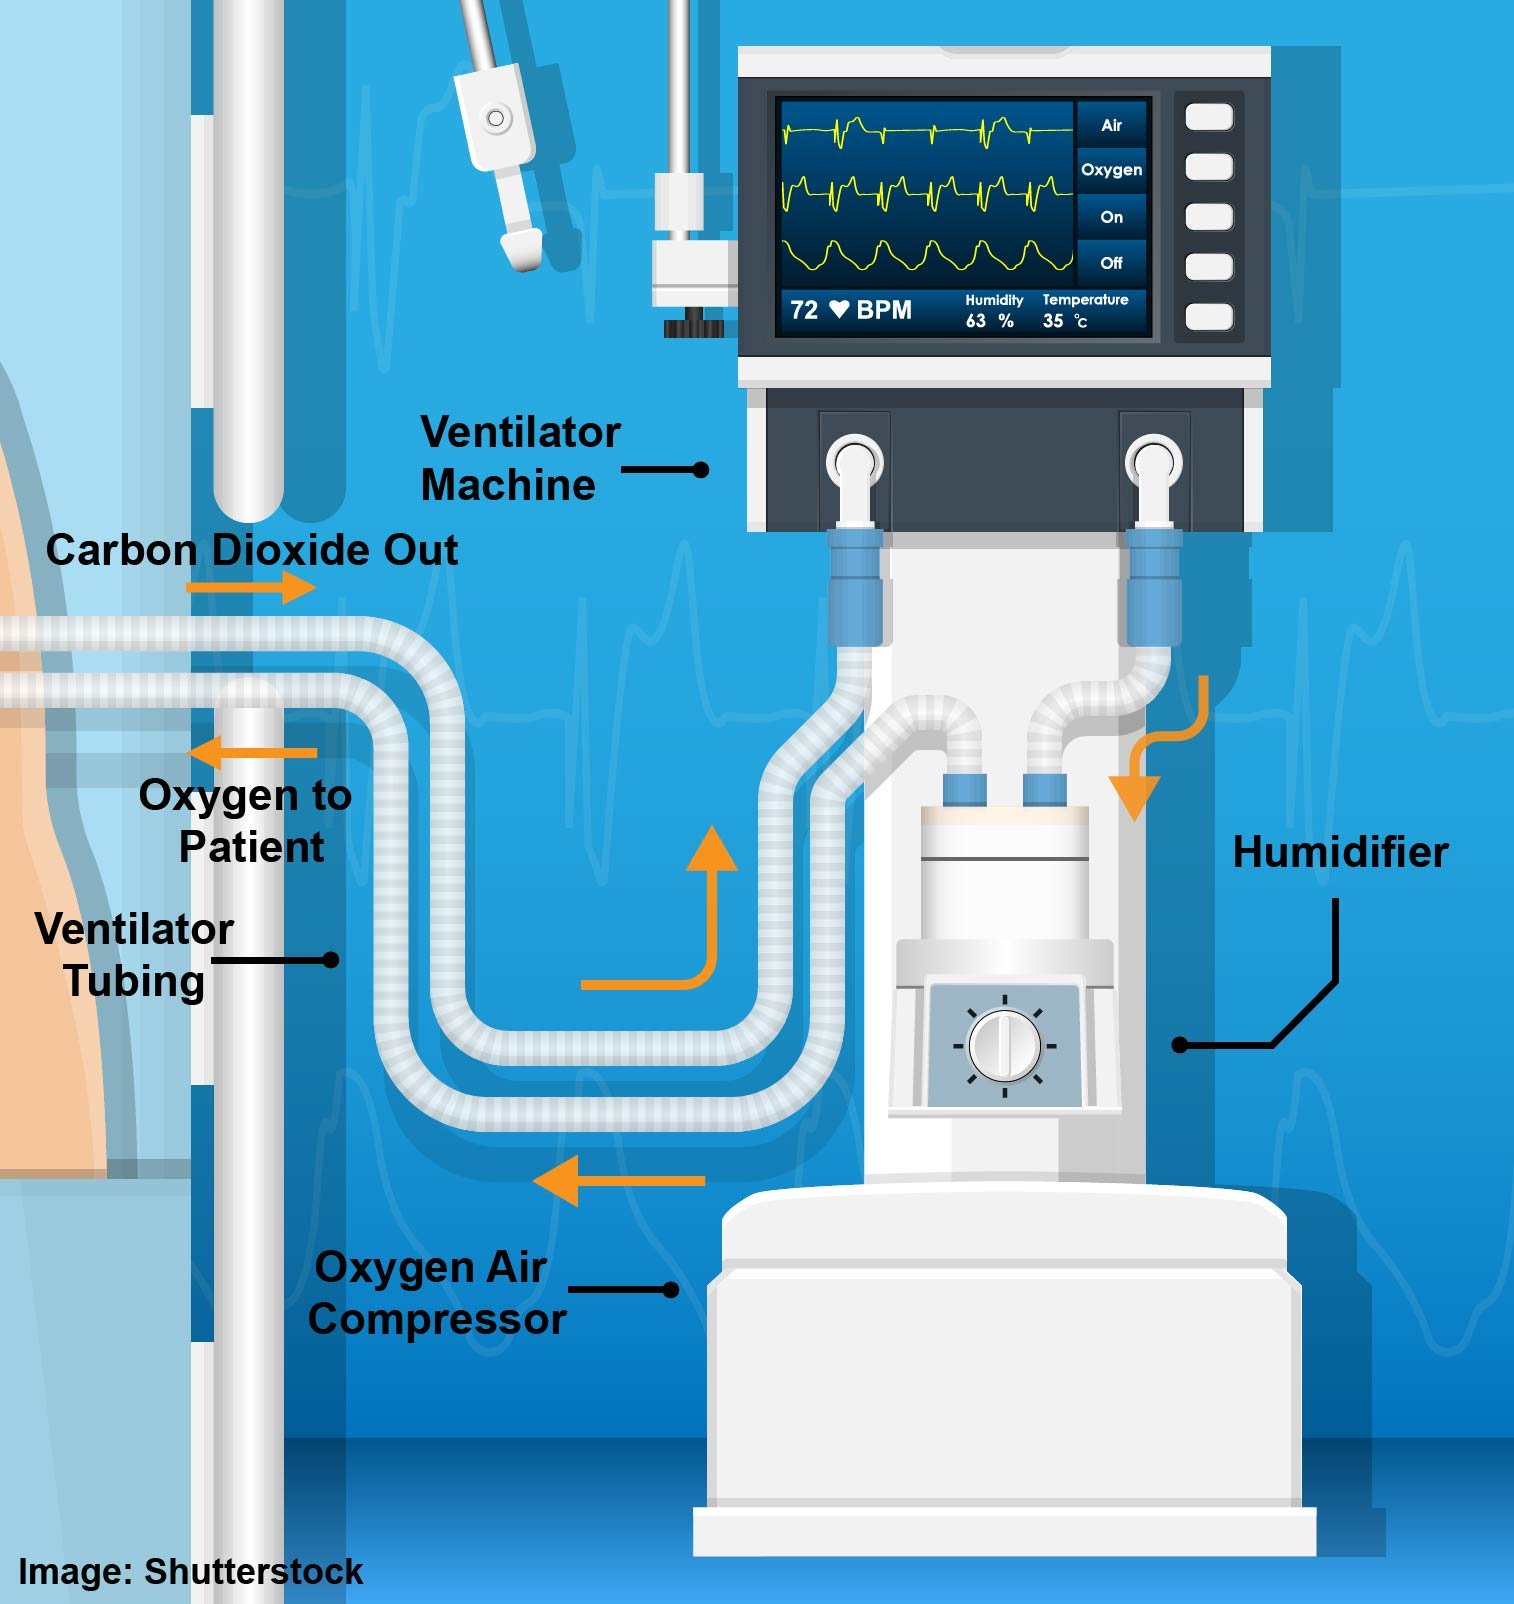 Components and Diagram of a Mechanical Ventilator